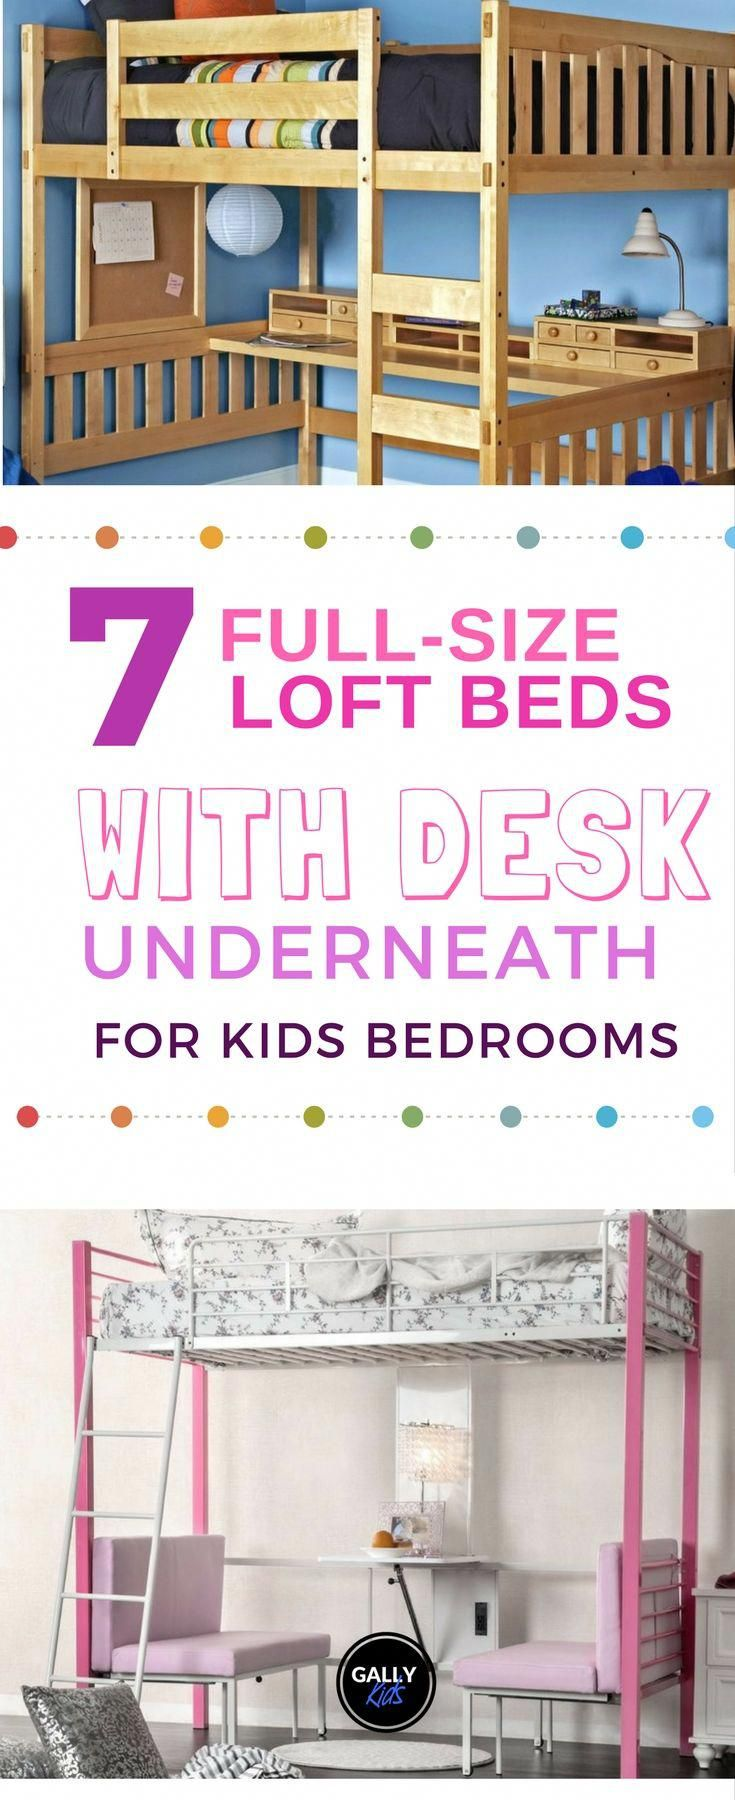 Loft bed with desk underneath  Fullsize loft beds with desk underneath Great for schoolaged kids